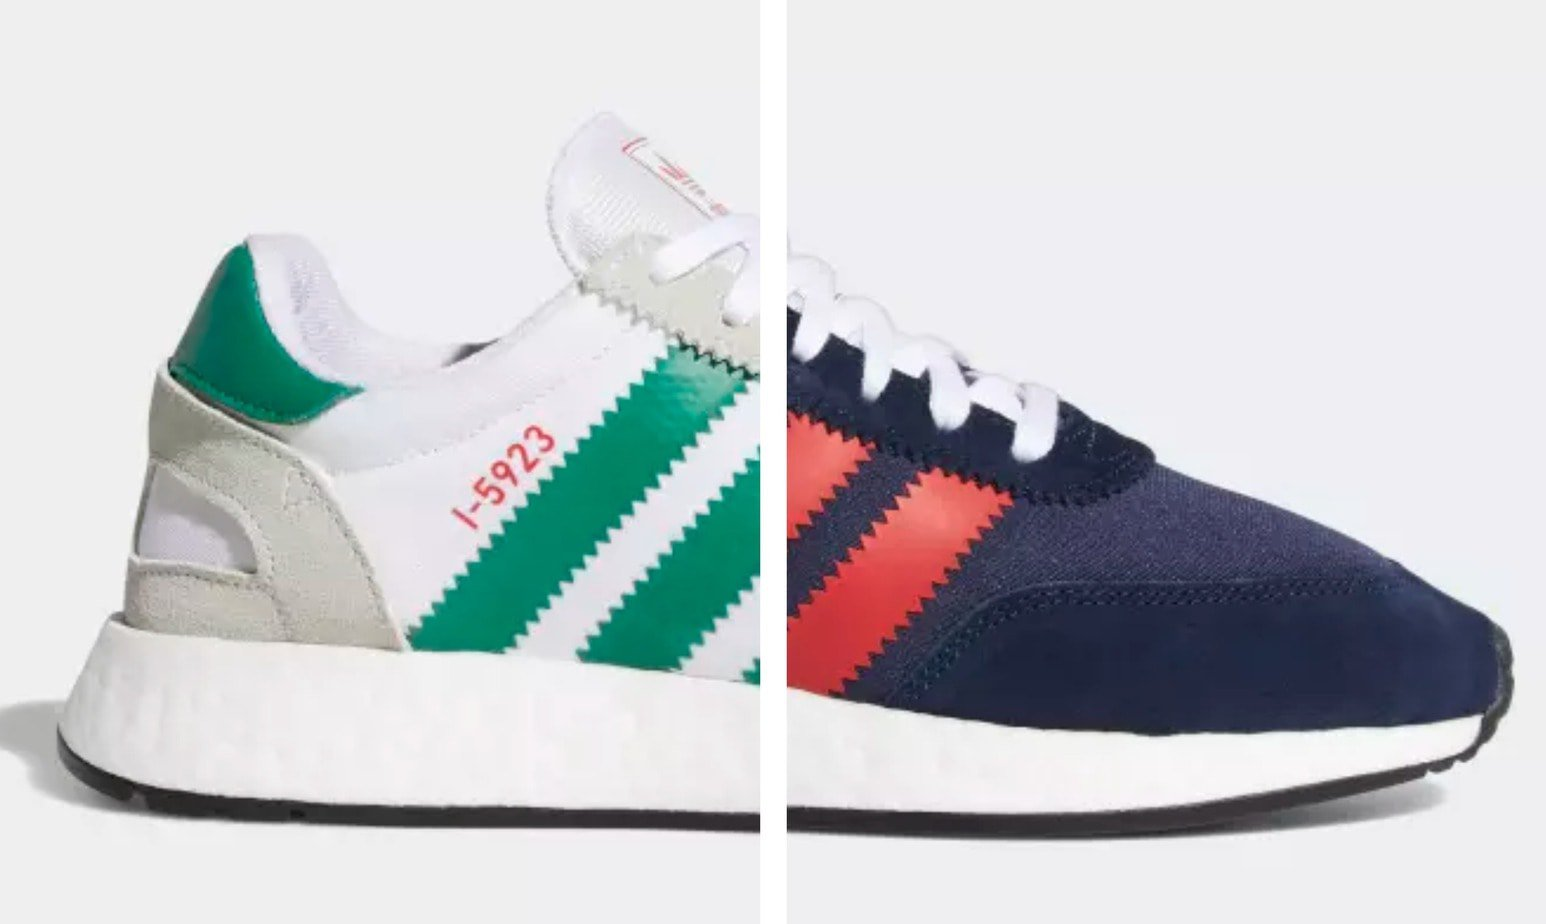 free shipping 126e6 ae1bf First released last year, the casual Boost runner has skyrocketed in  popularity, as well as availability. Each month, adidas adds new variations  to their ...